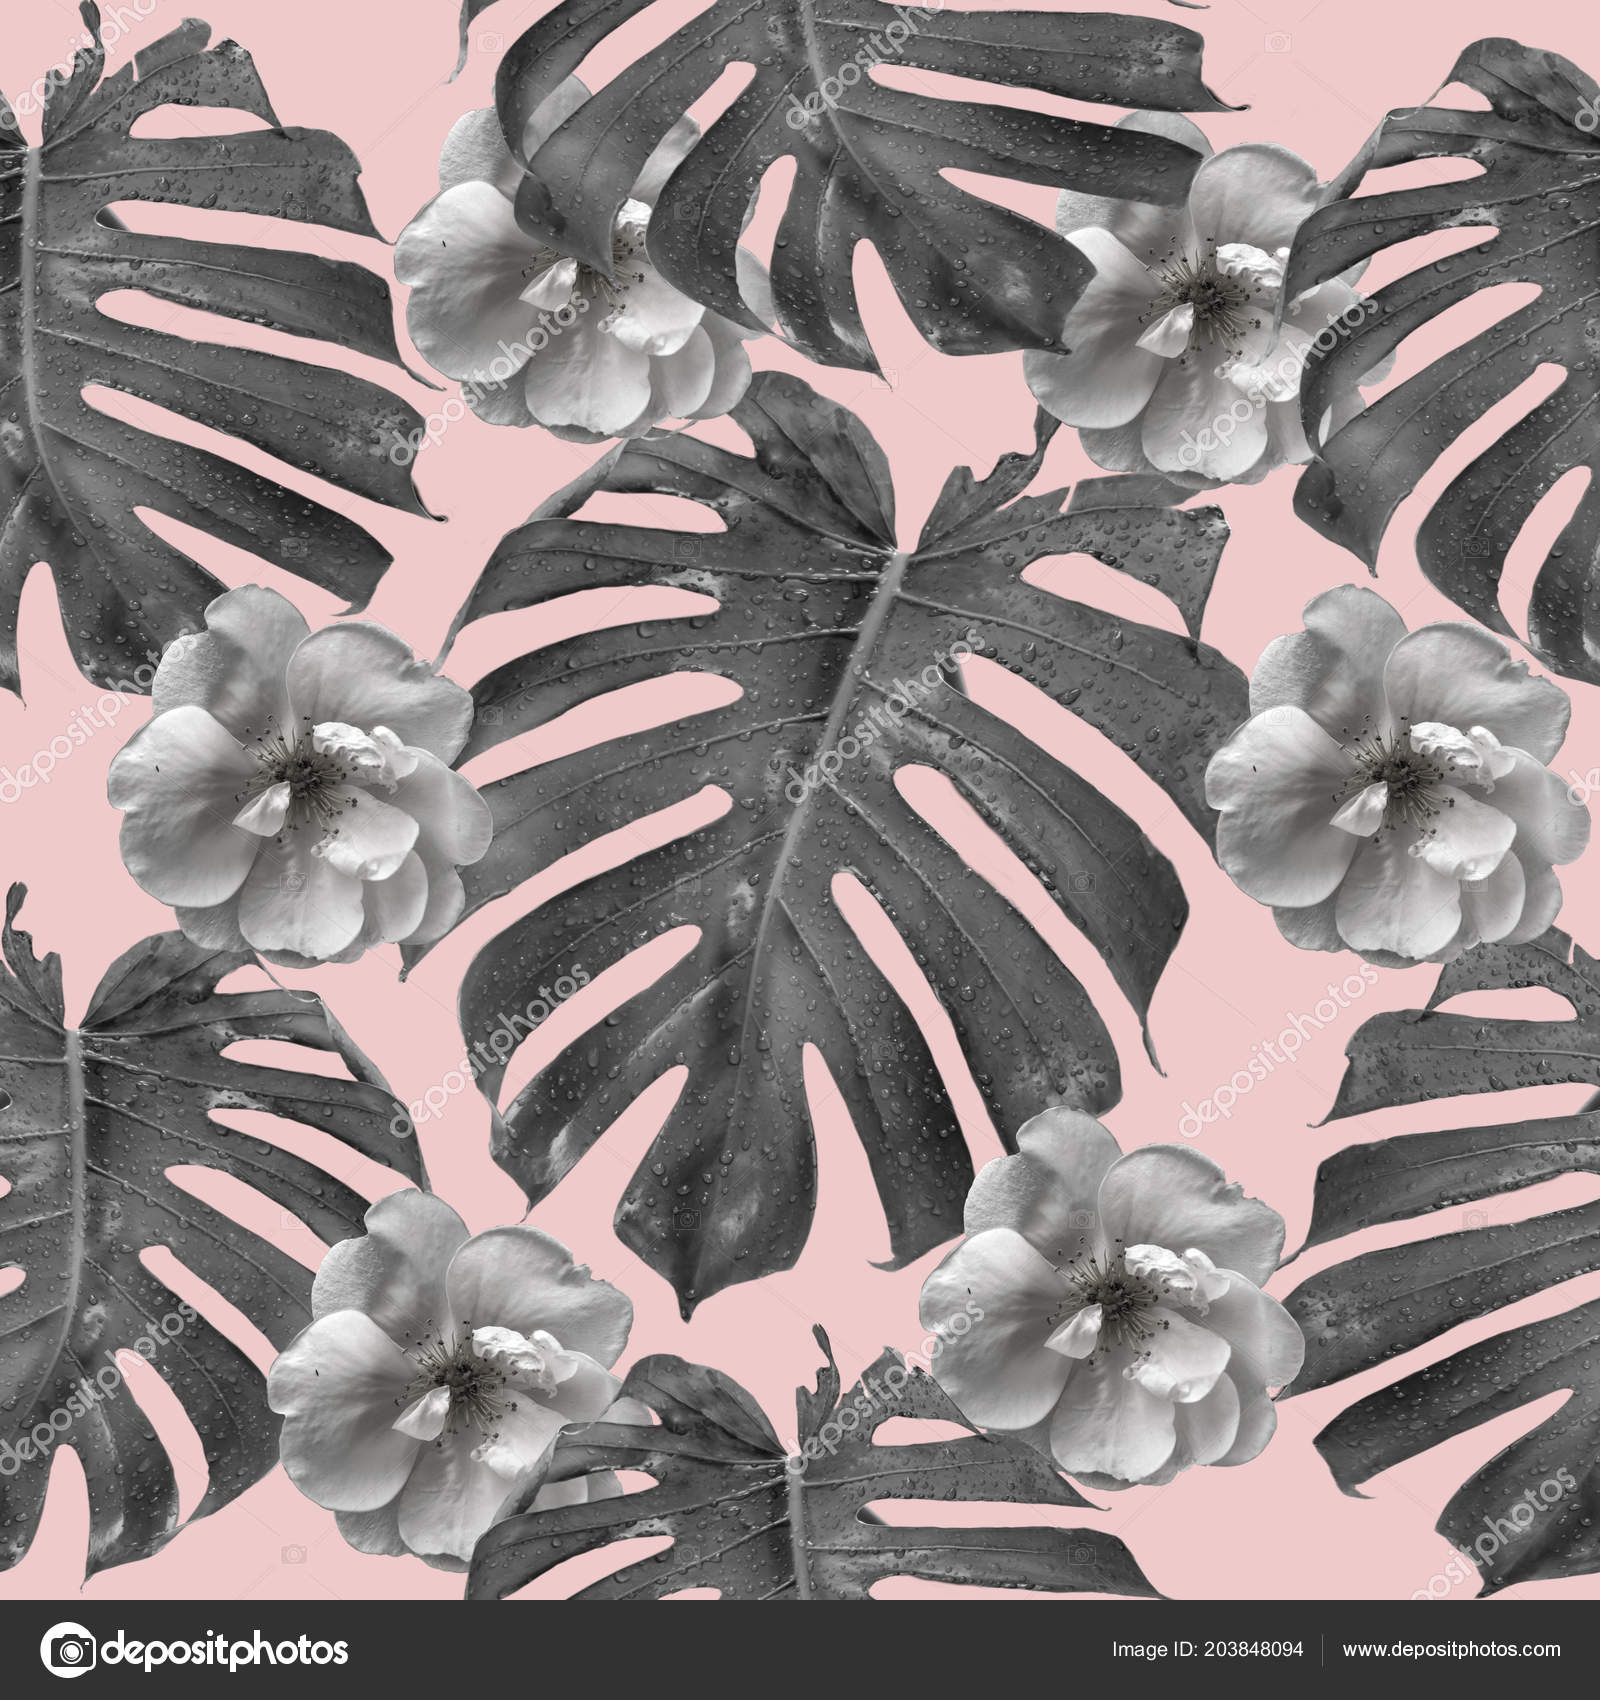 Black and white monstera leaf seamless pattern on a pink background contemporary collage art nature art photo by